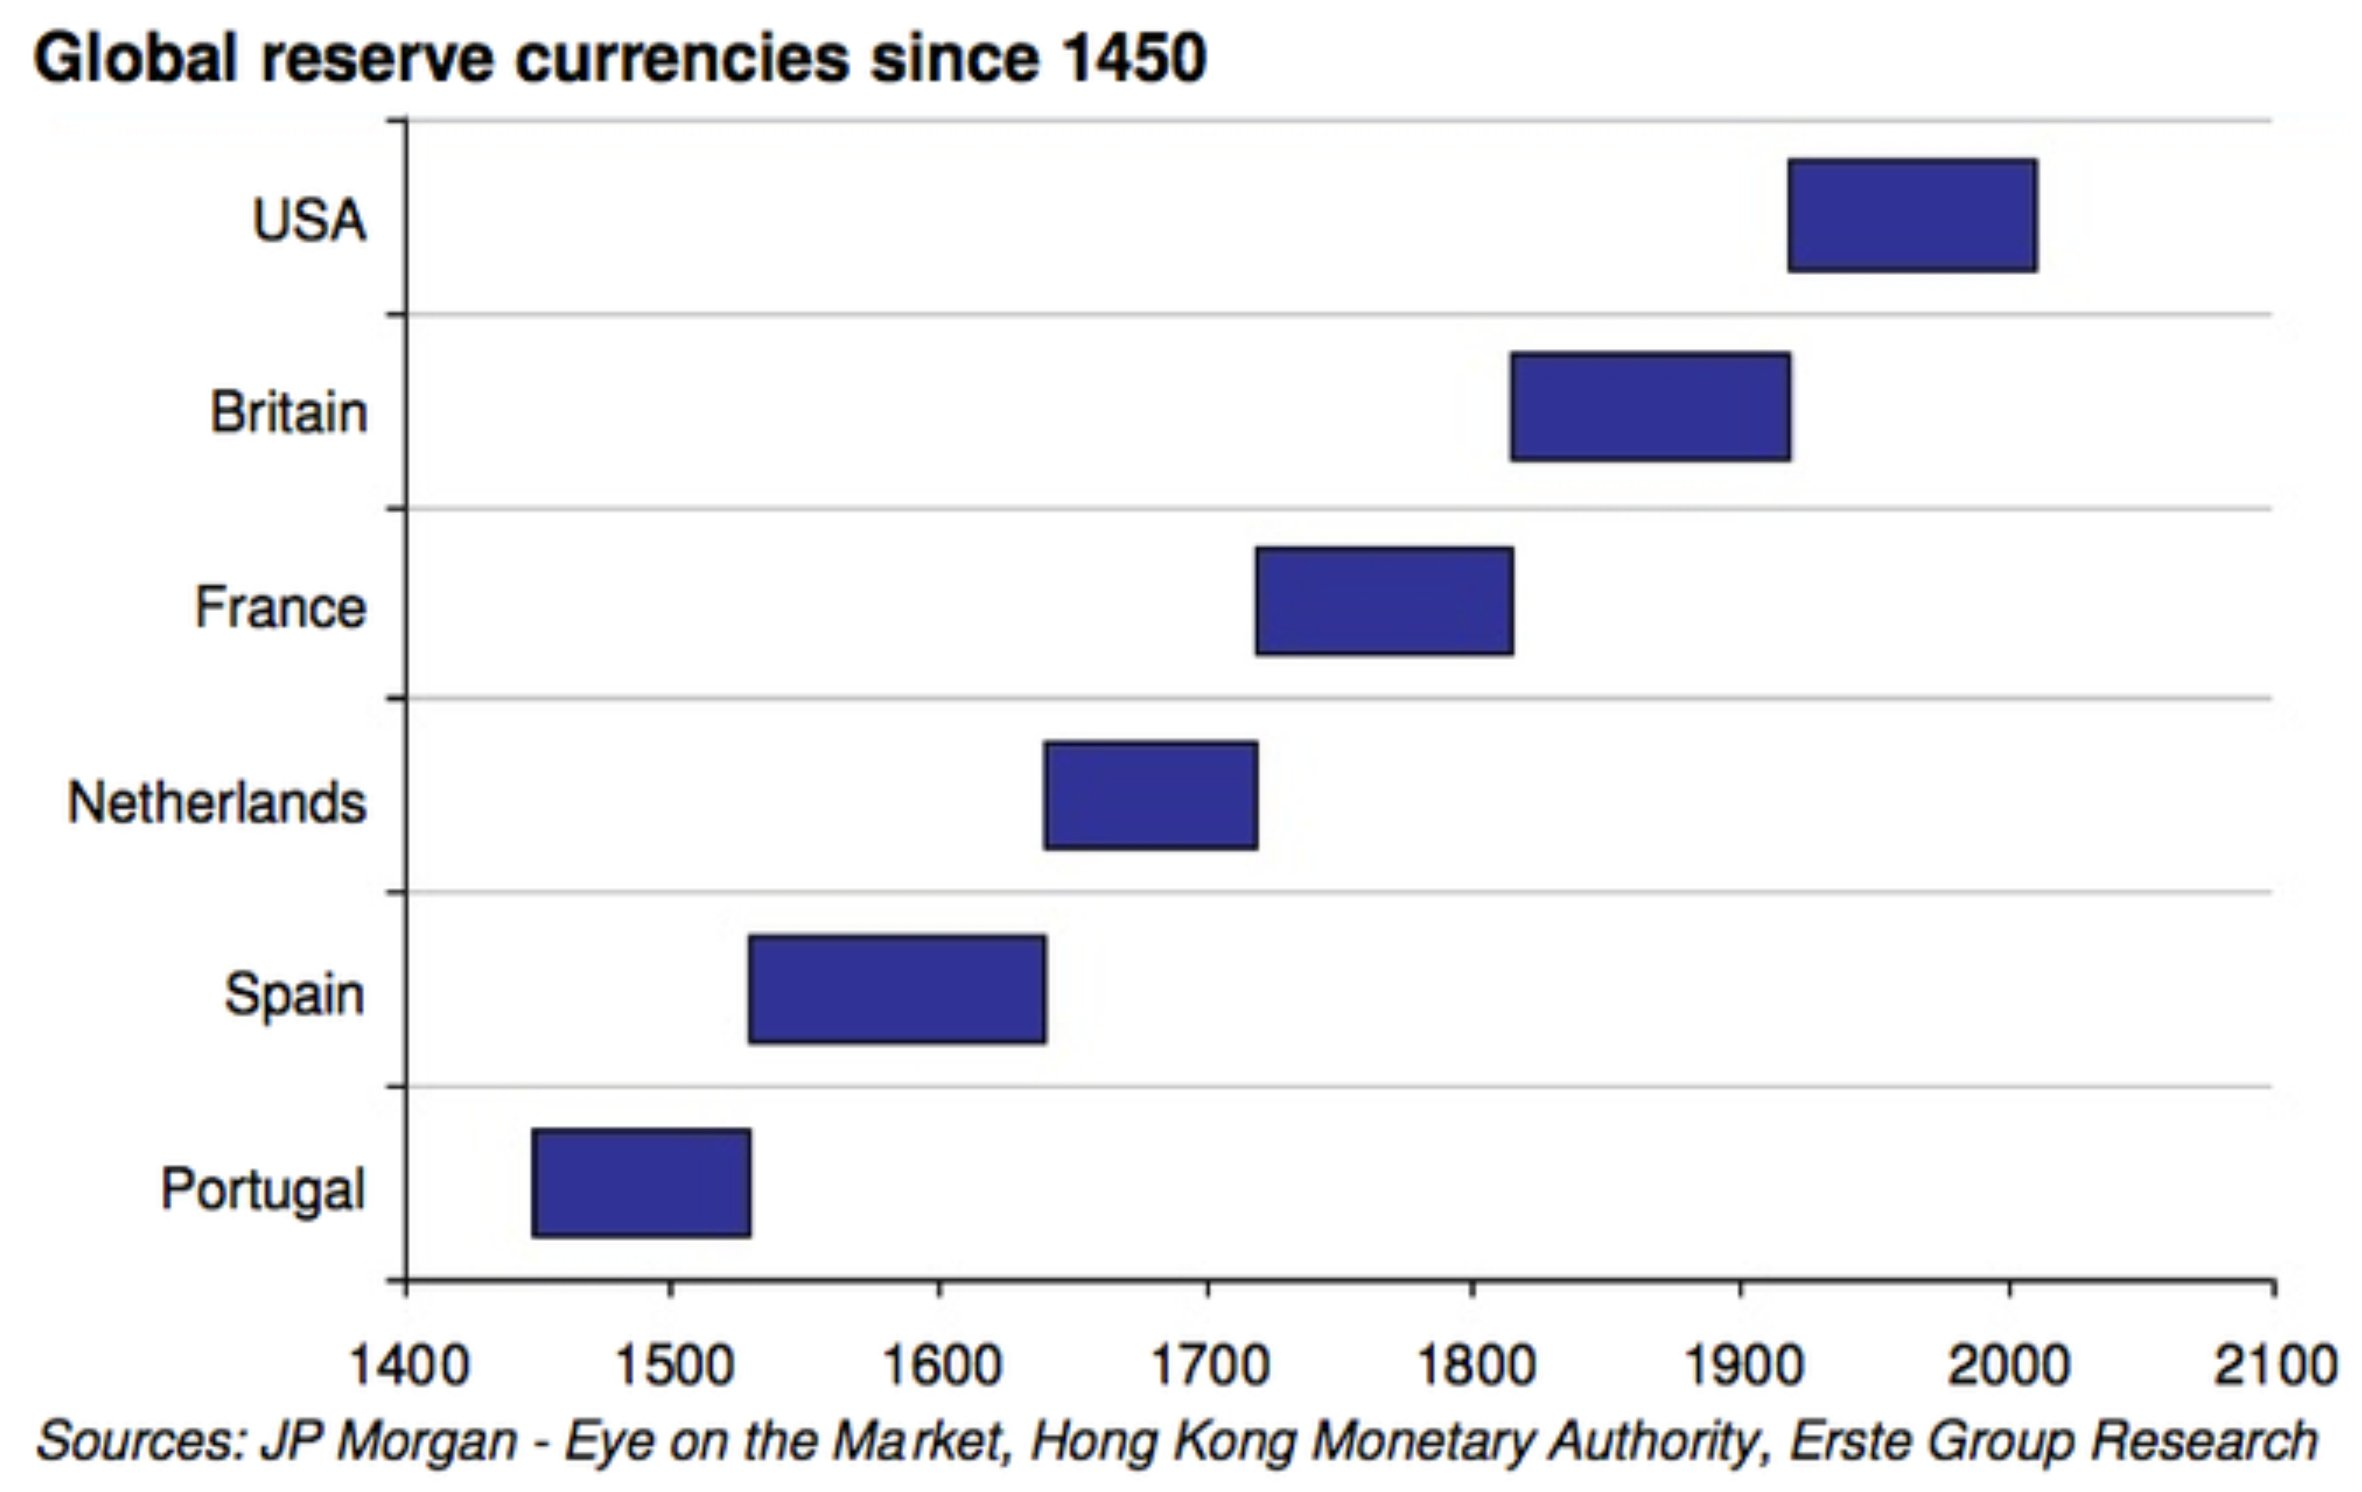 Global Reserve Currencies since 1450